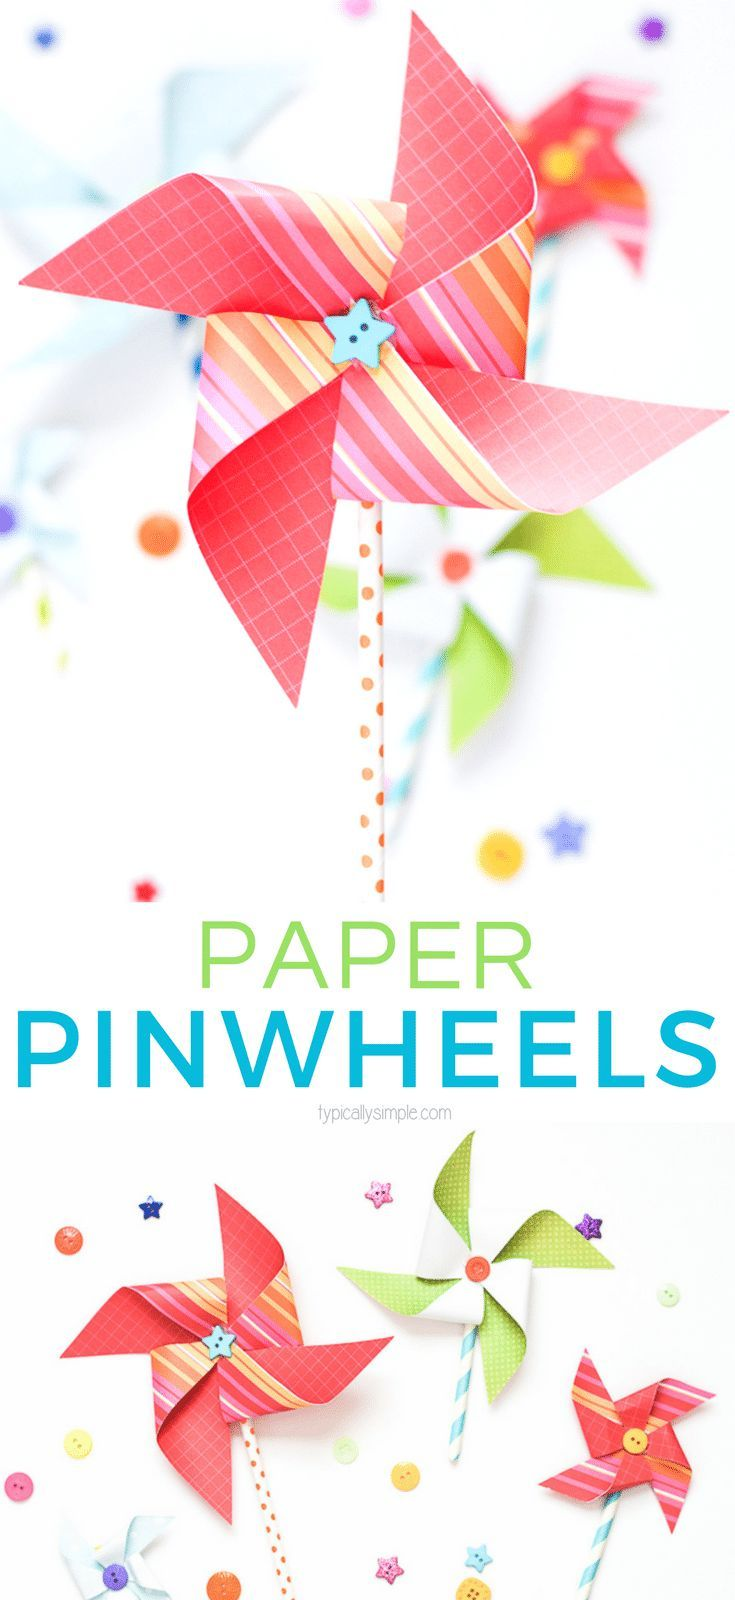 DIY Craft: These paper pinwheels are a cute way to add some pops of color to your decor. A fun spring or summer project to make with the kids! <a class=